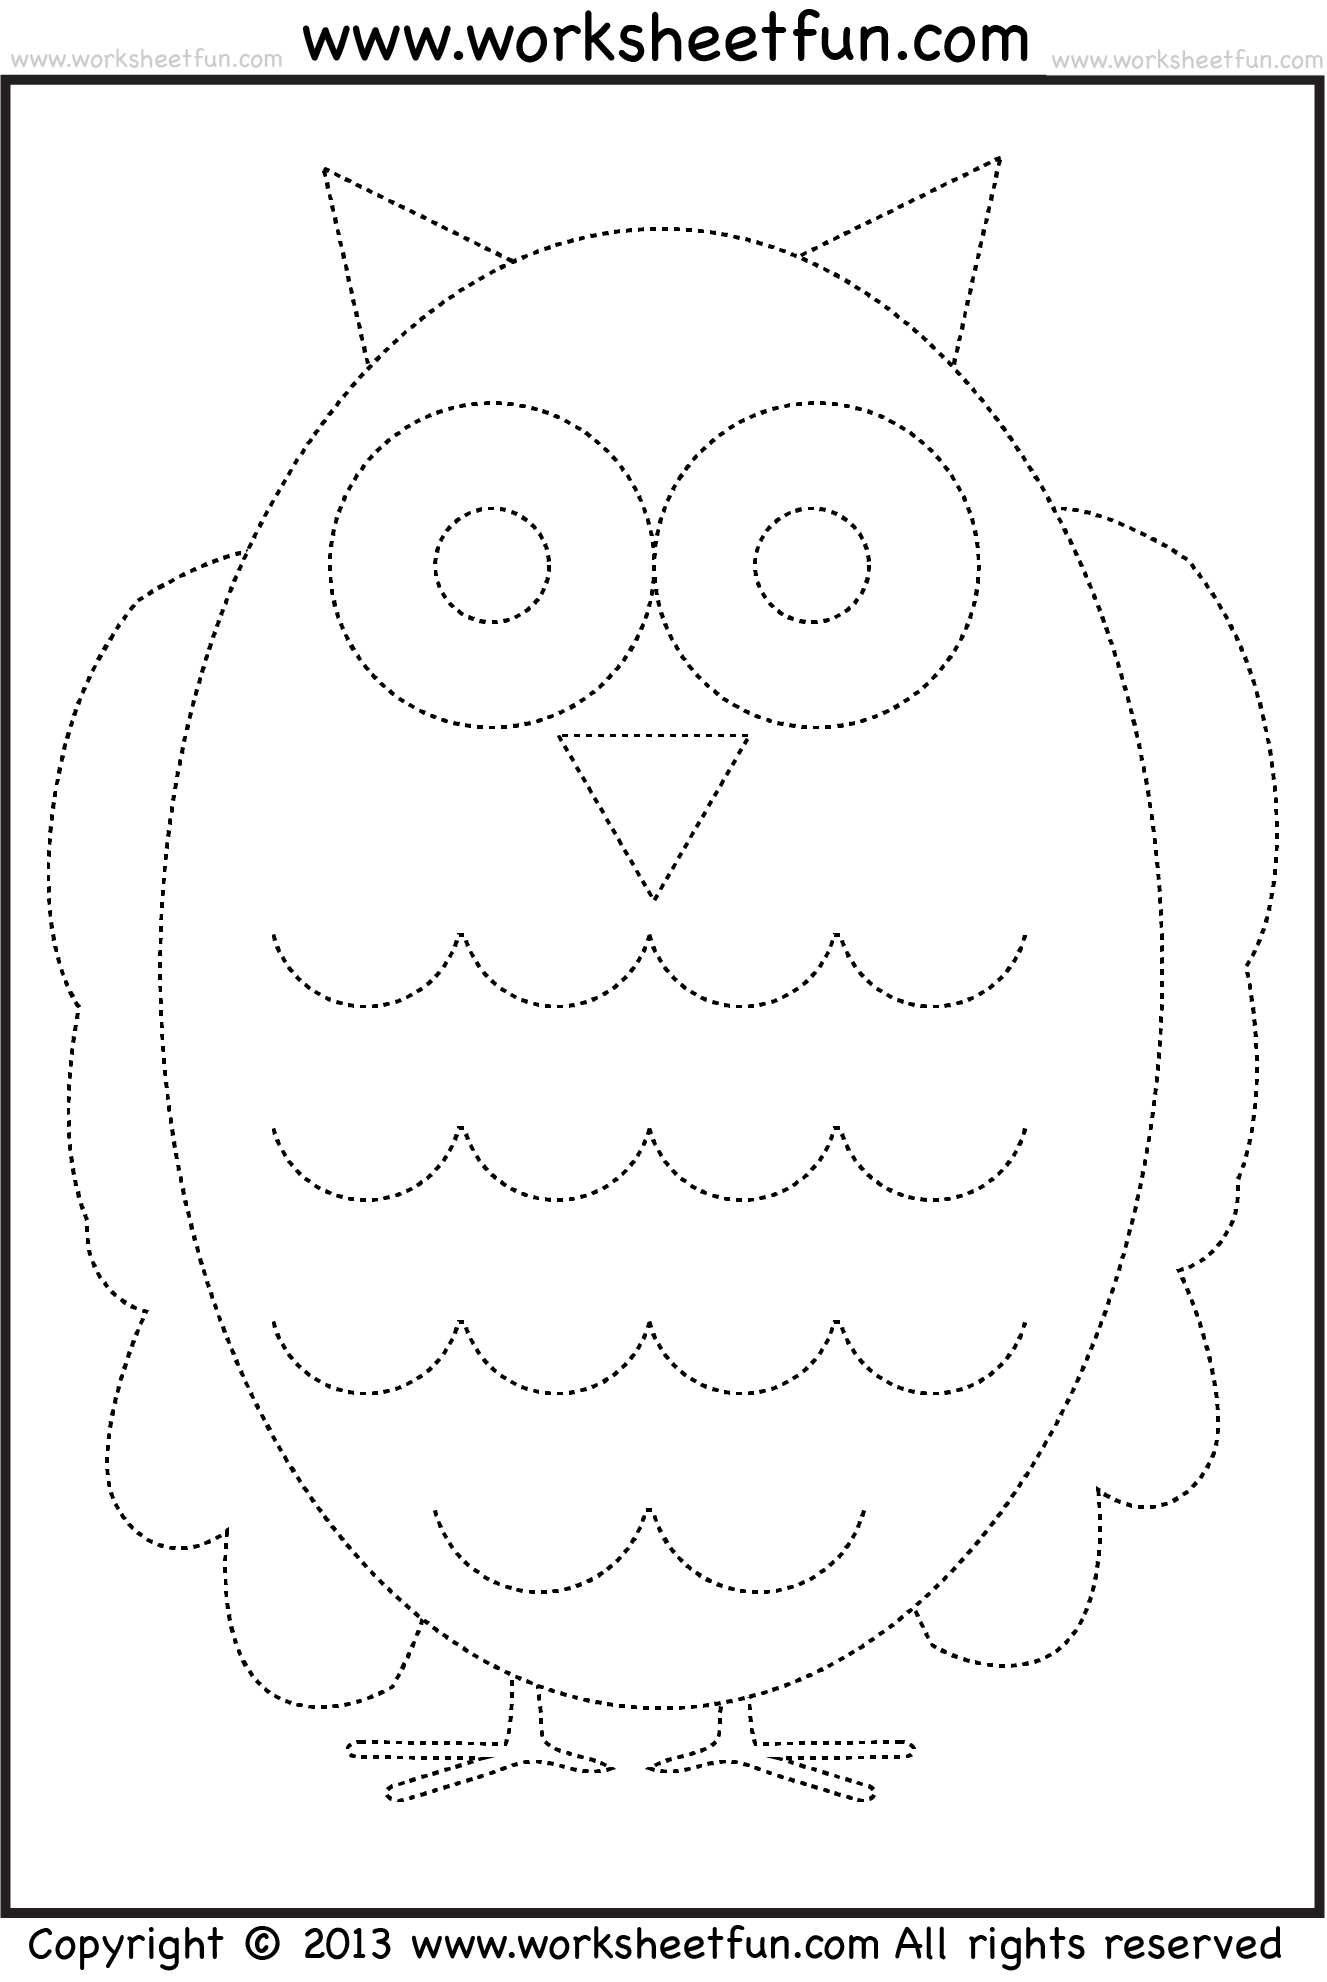 Owl Tracing And Coloring 4 Halloween Worksheets Free Printable Worksheets Worksheetfun